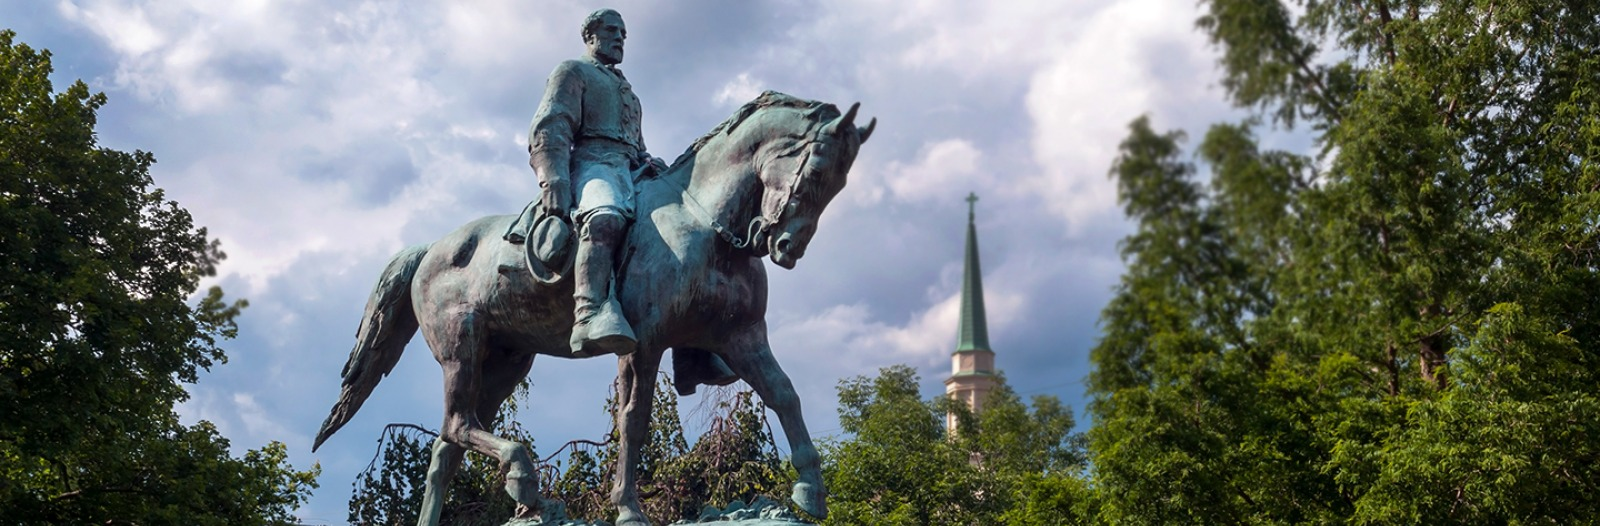 Statue of Robert E. Lee on a horse